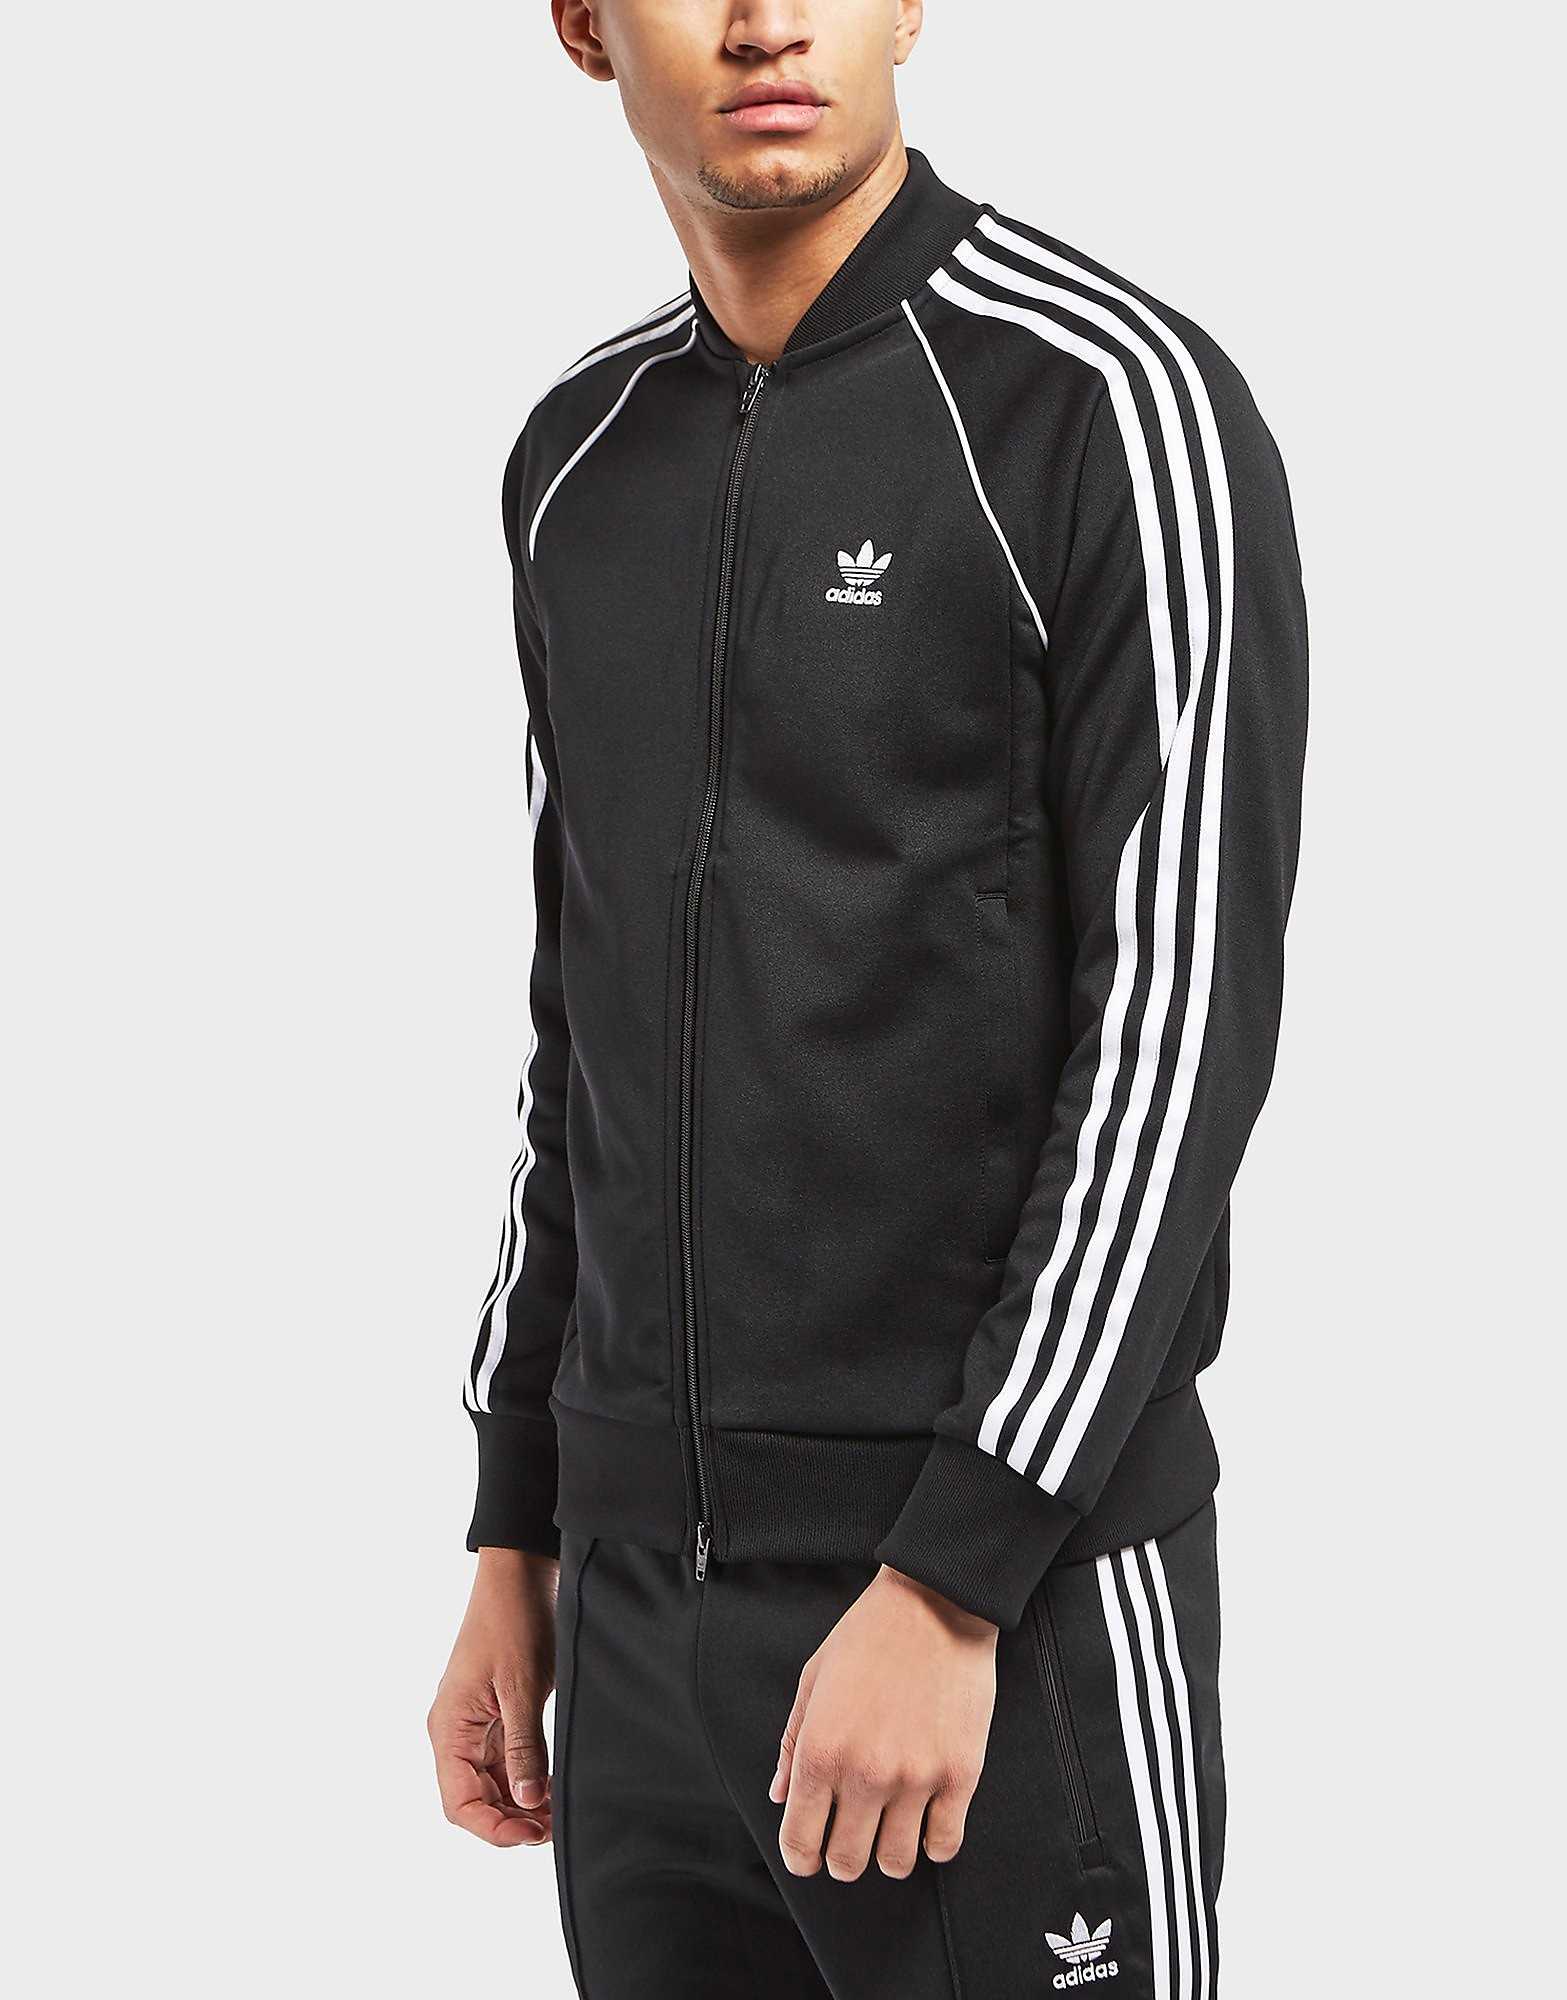 adidas Originals Superstar Full Zip Track Top